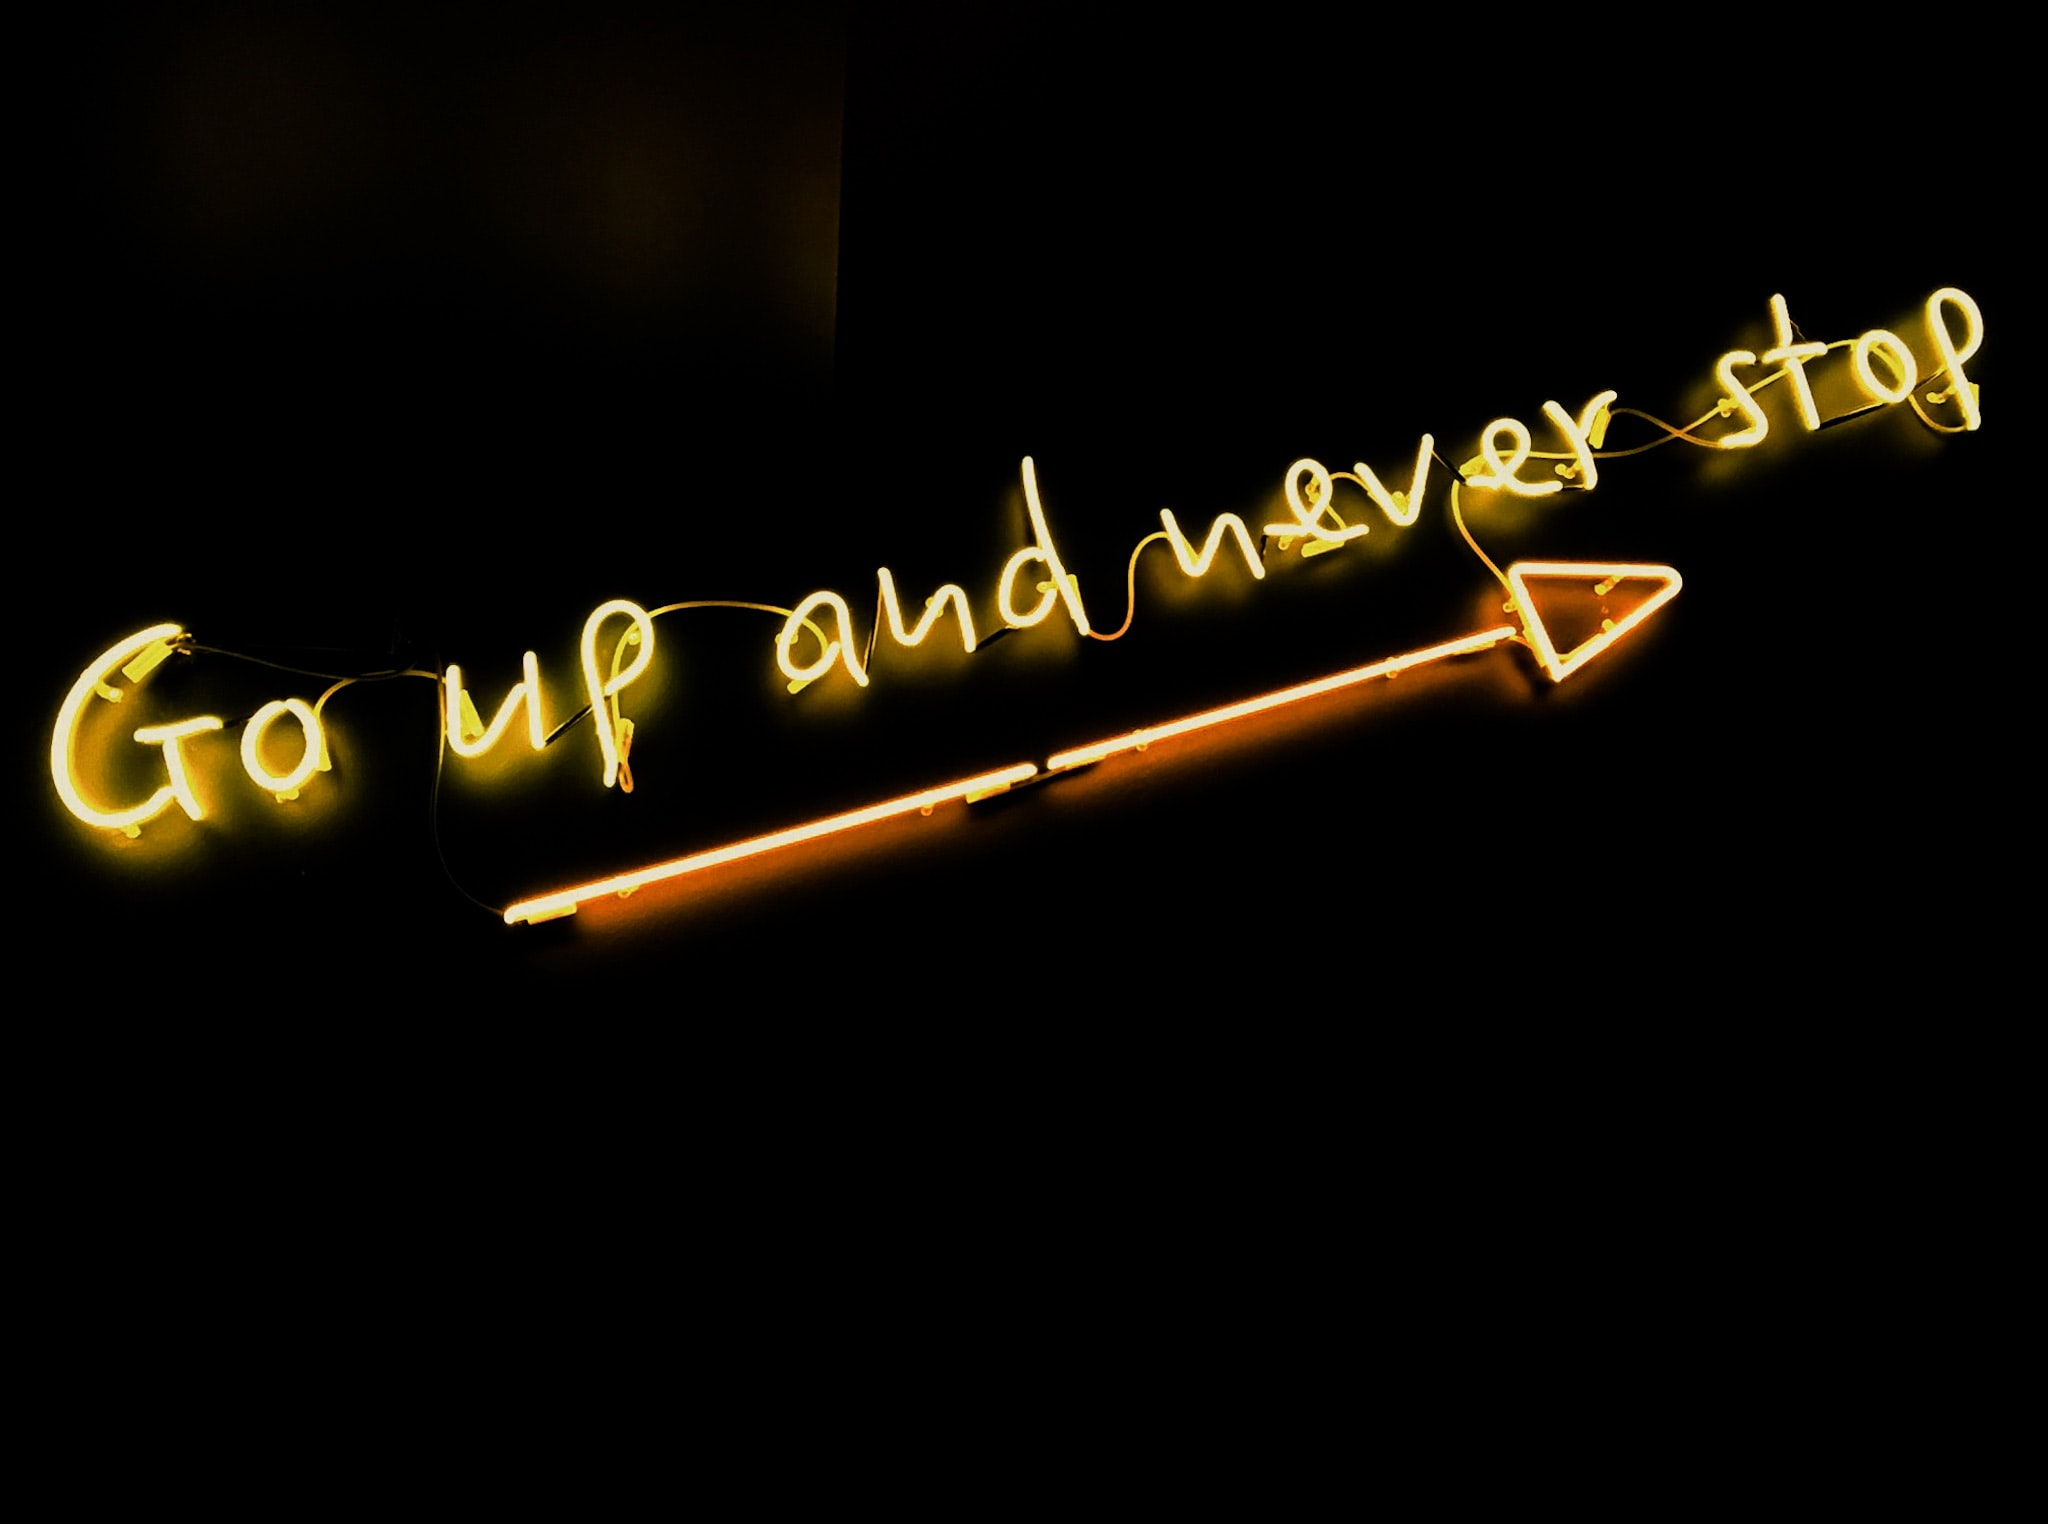 black background with yellow text overaly